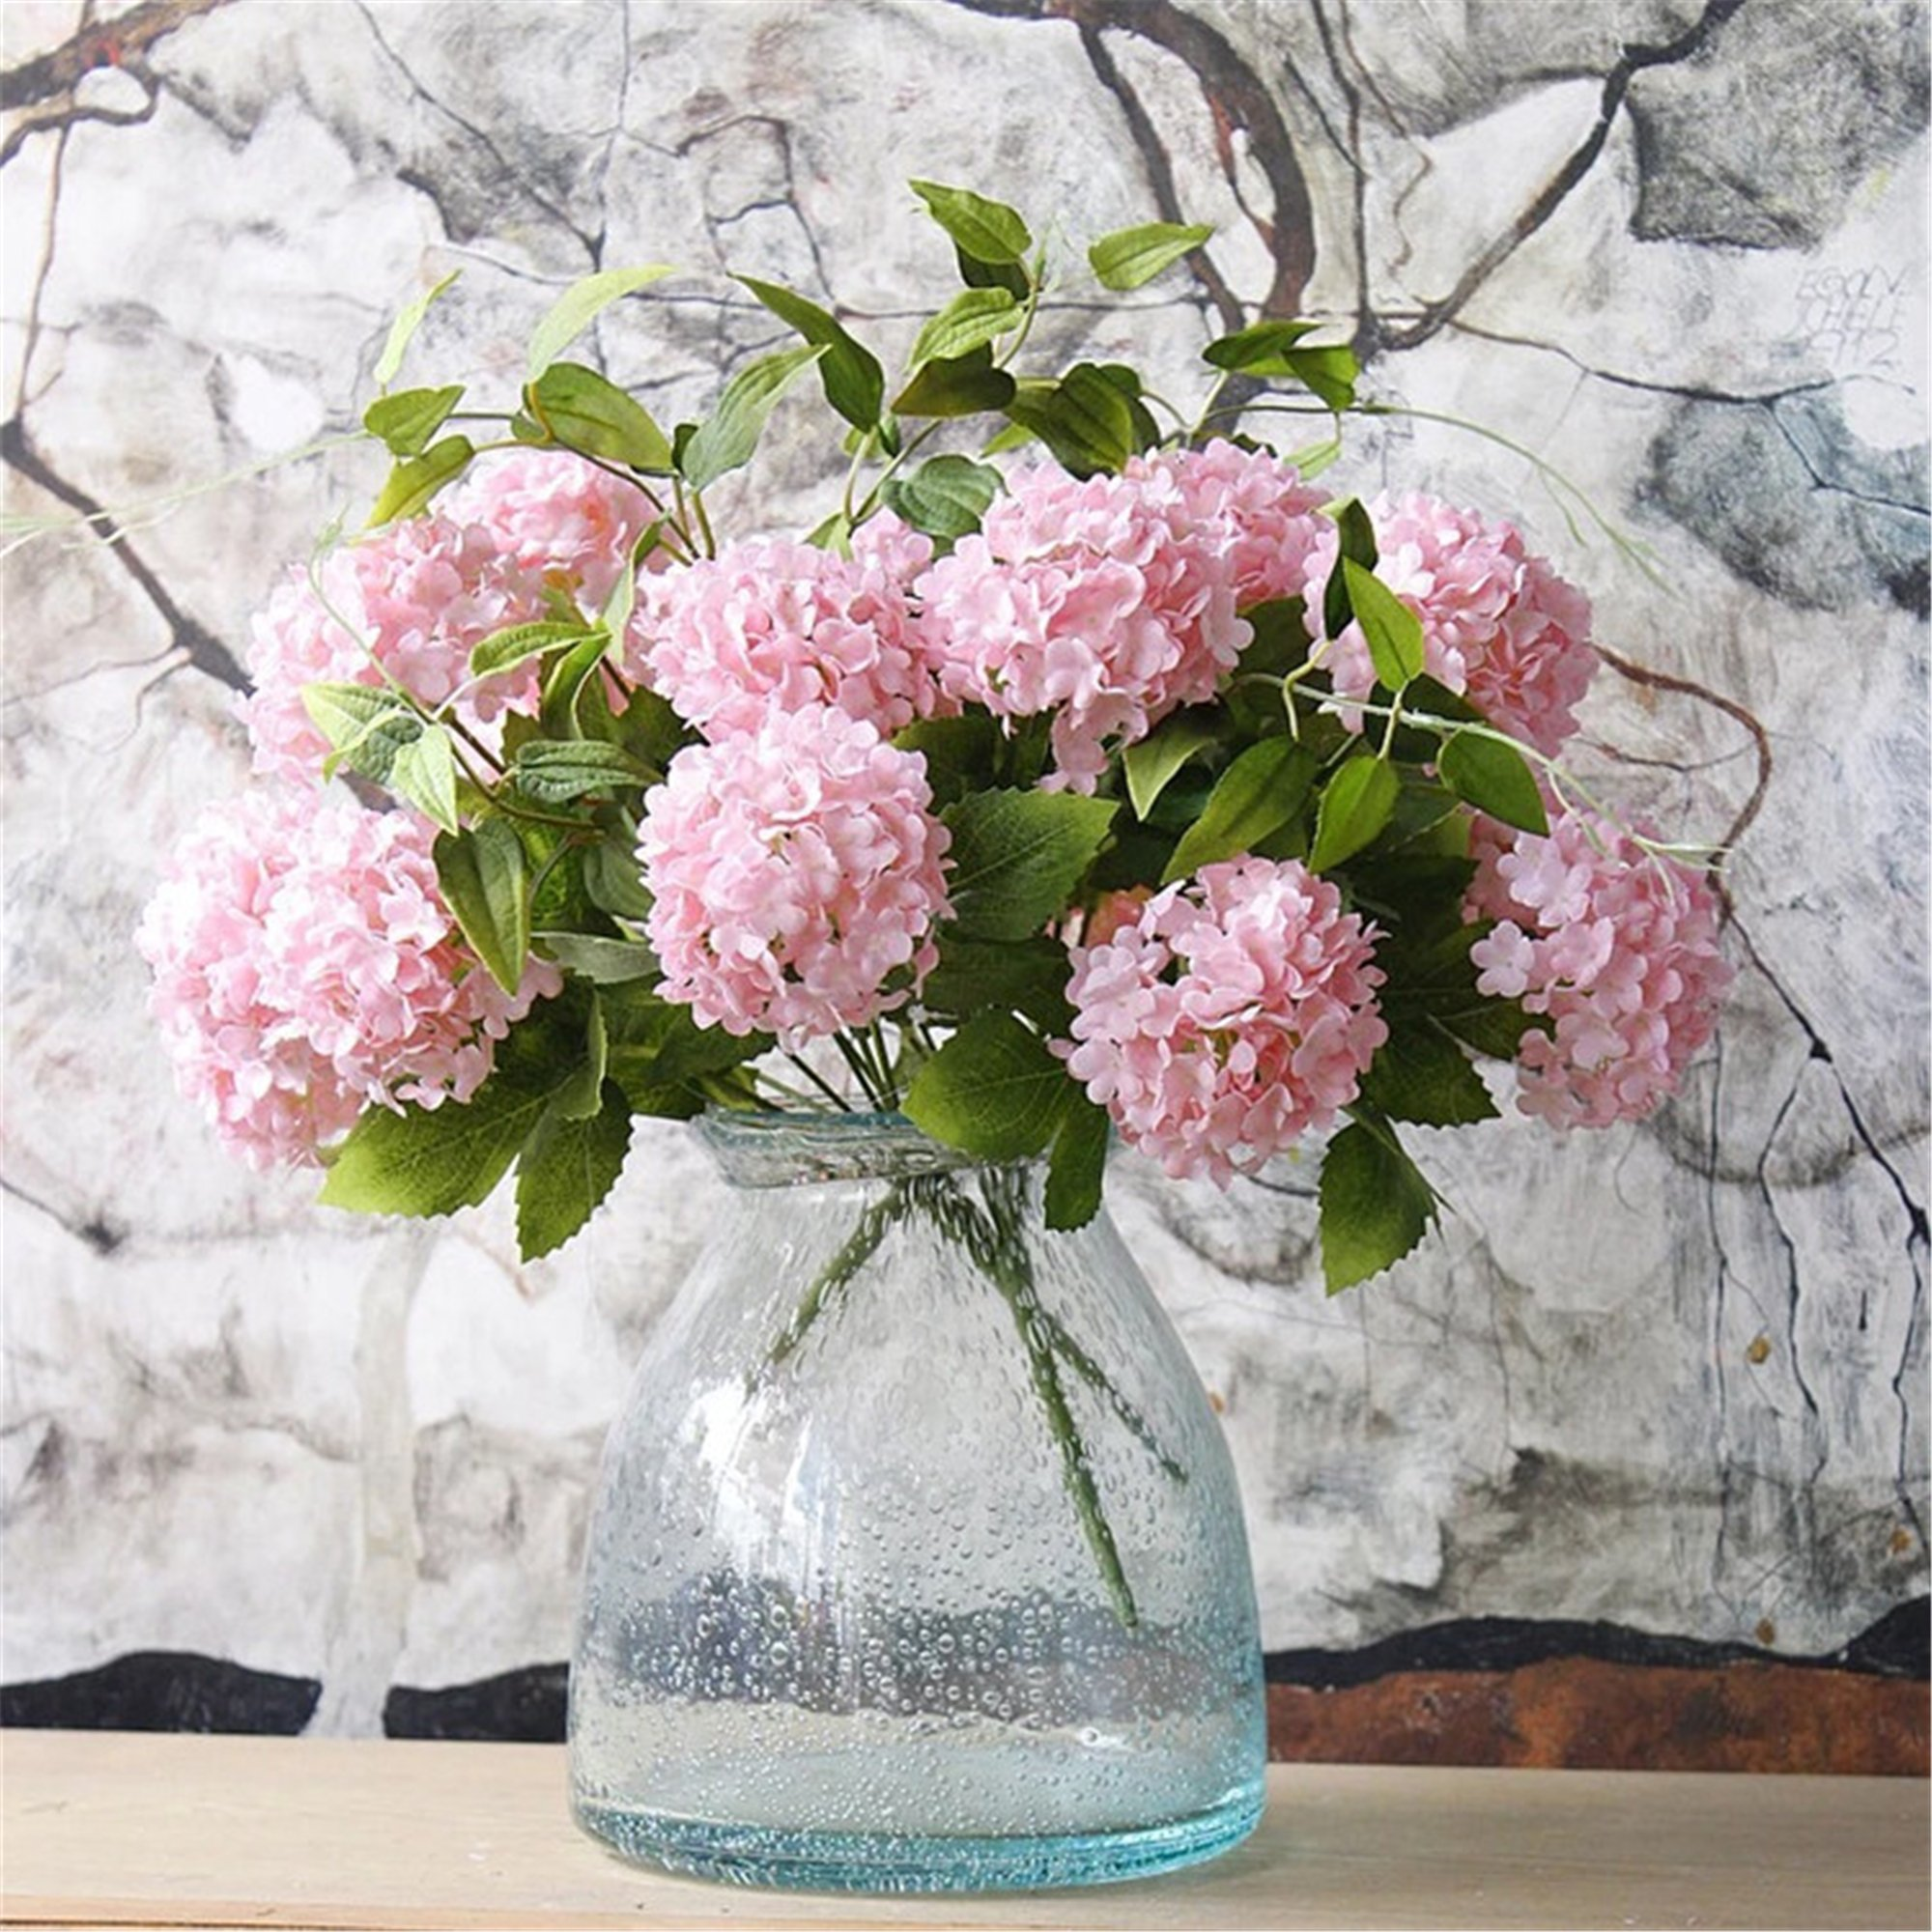 Greentime Mini Artificial Flowers 13'' Silk 7 Head Tiny Hydrangea Bouquet for Wedding, Room, Home, Hotel, Party Decoration and Holiday Gift (Pink)